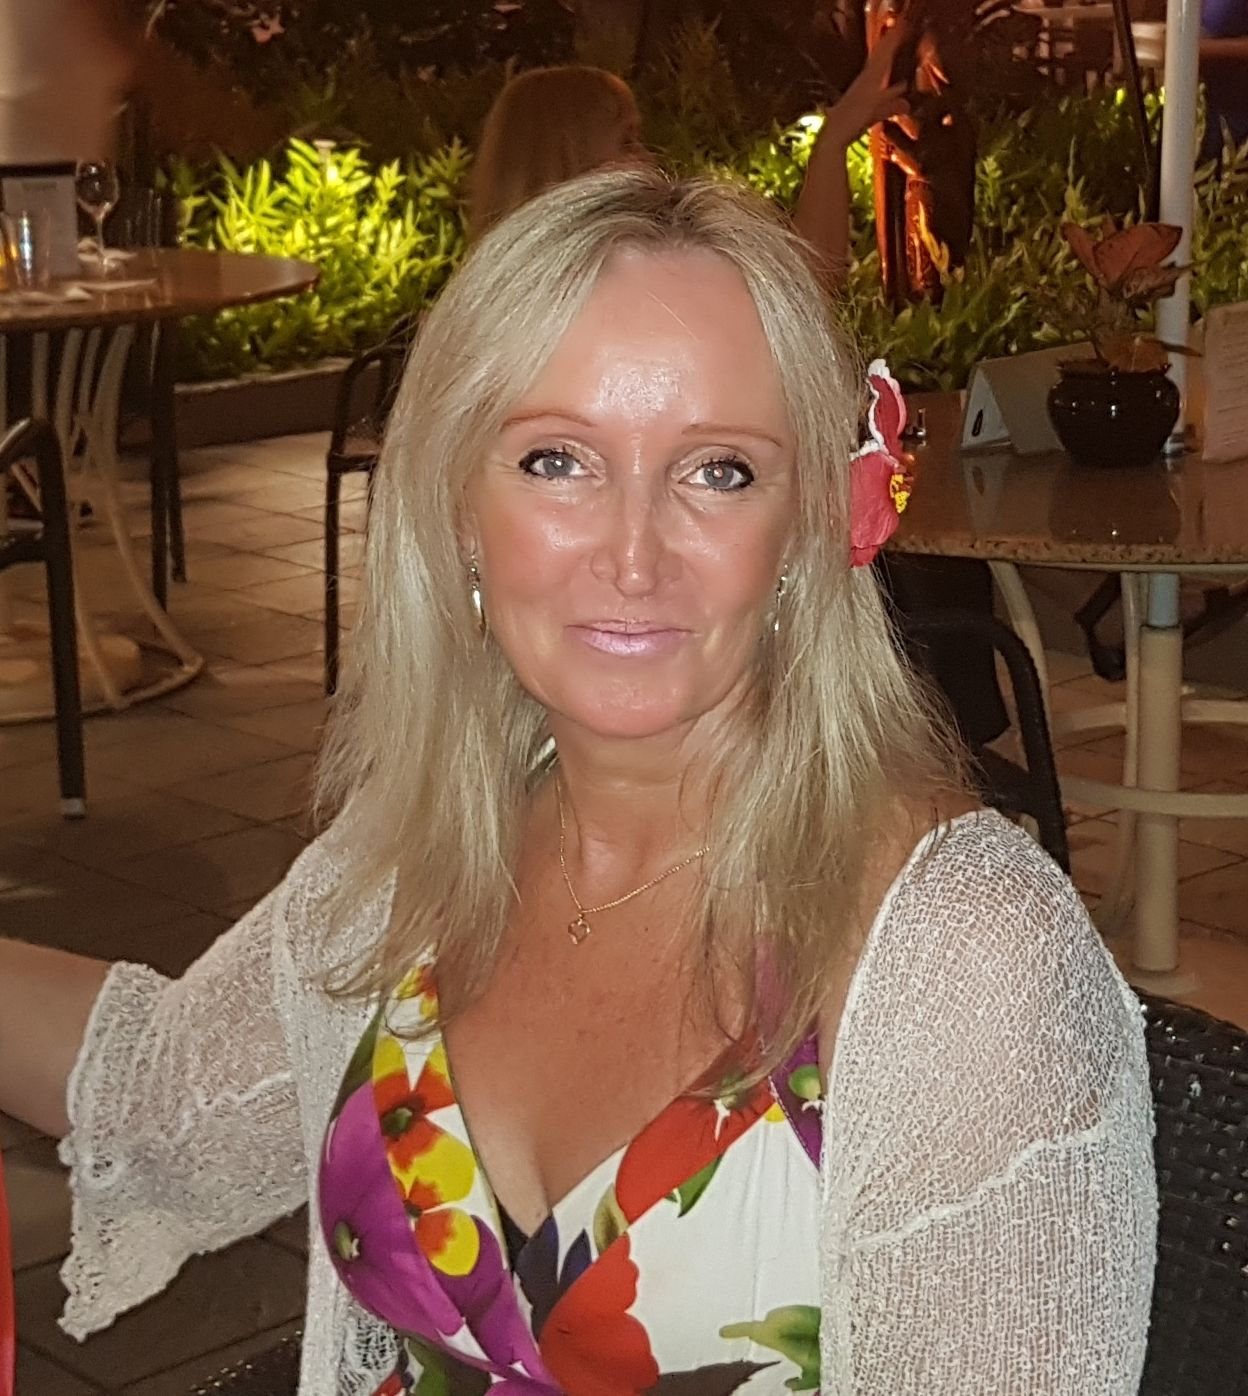 queensland singles Meet thousands of local yeppoon singles, as the worlds largest dating site we make dating in yeppoon easy plentyoffish is 100% free, unlike paid dating sites.